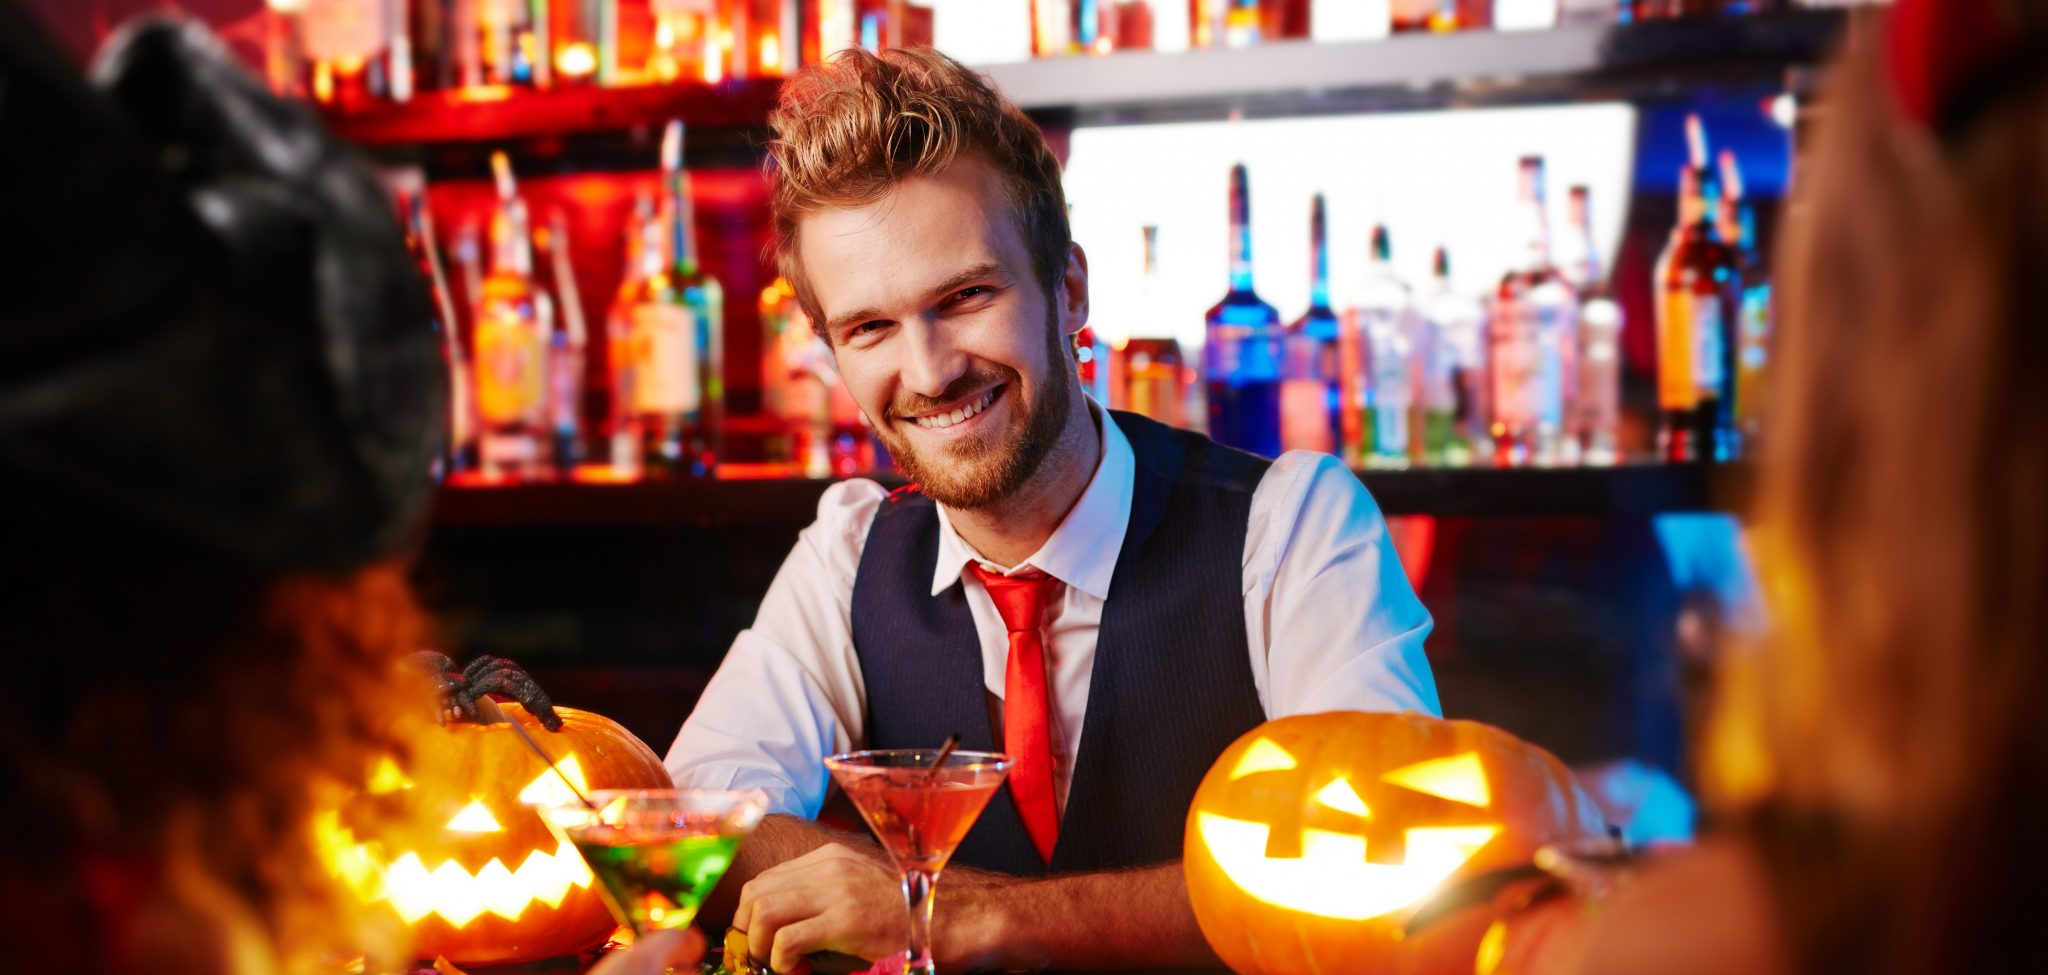 How To Make Your Bar or Restaurant The Best Spot To Celebrate Halloween